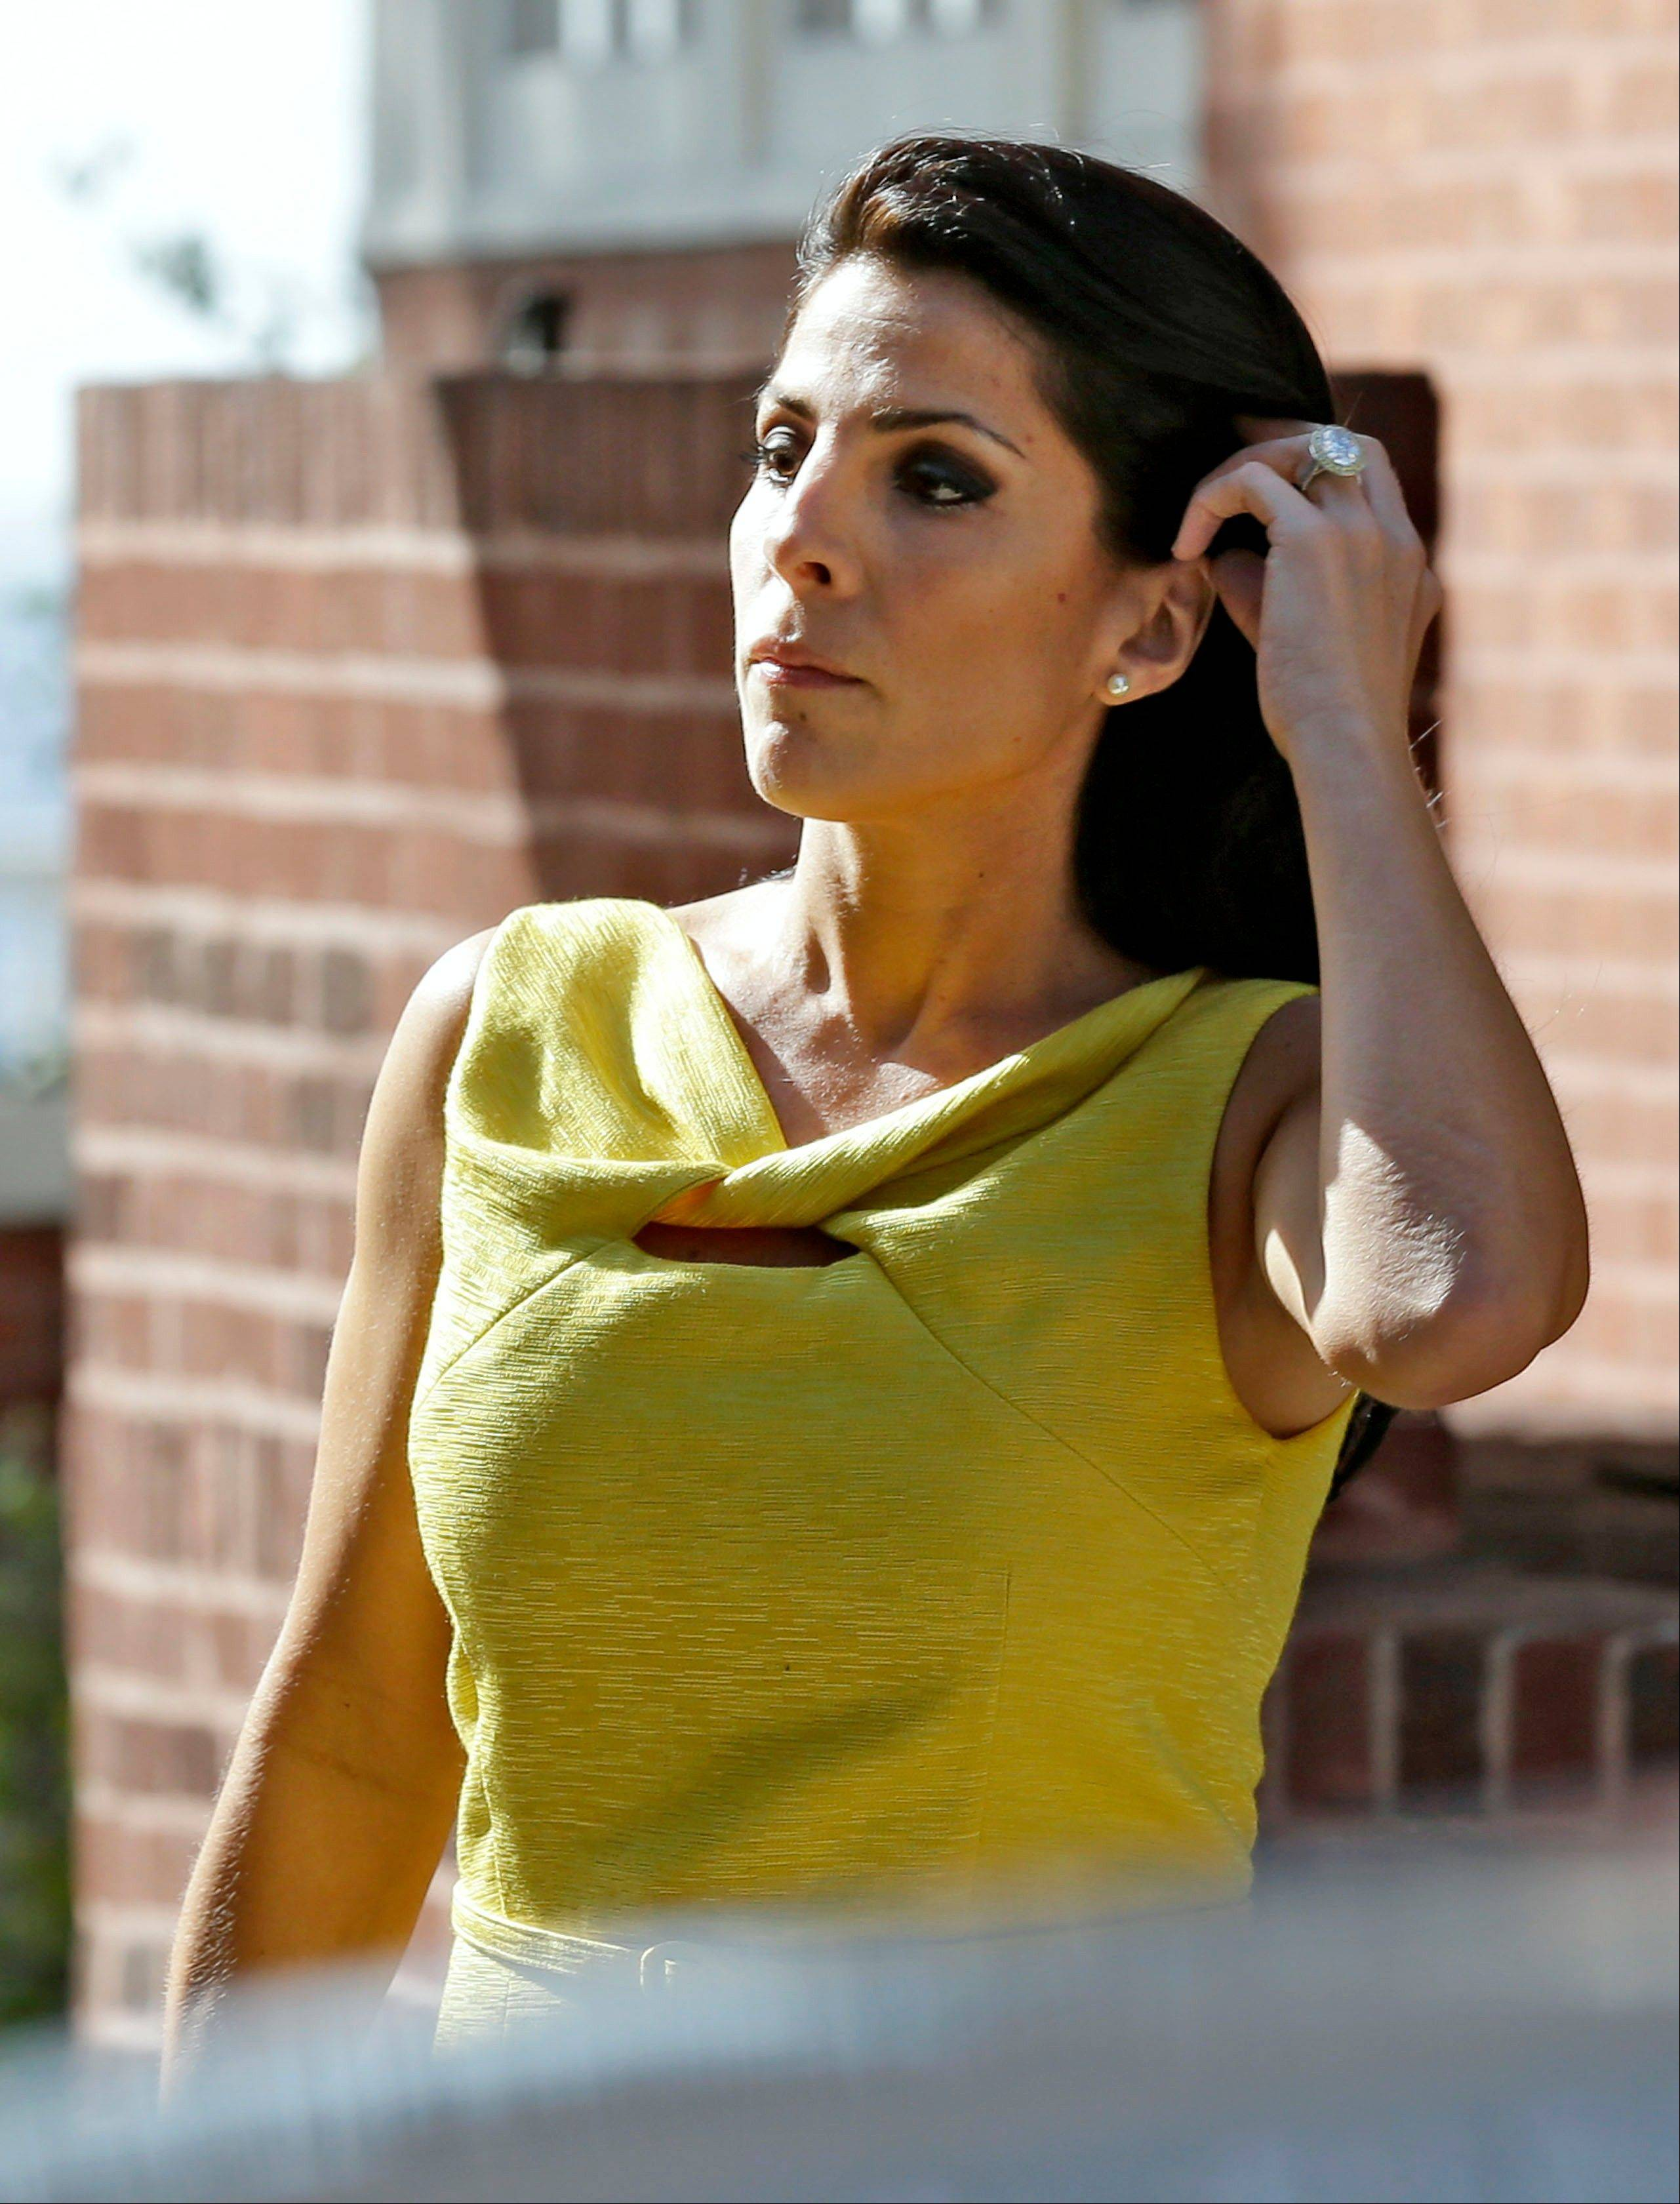 Jill Kelley is identified as the woman who allegedly received harassing emails from Gen. David Petraeus' paramour, Paula Broadwell. She serves as an unpaid social liaison to MacDill Air Force Base in Tampa.